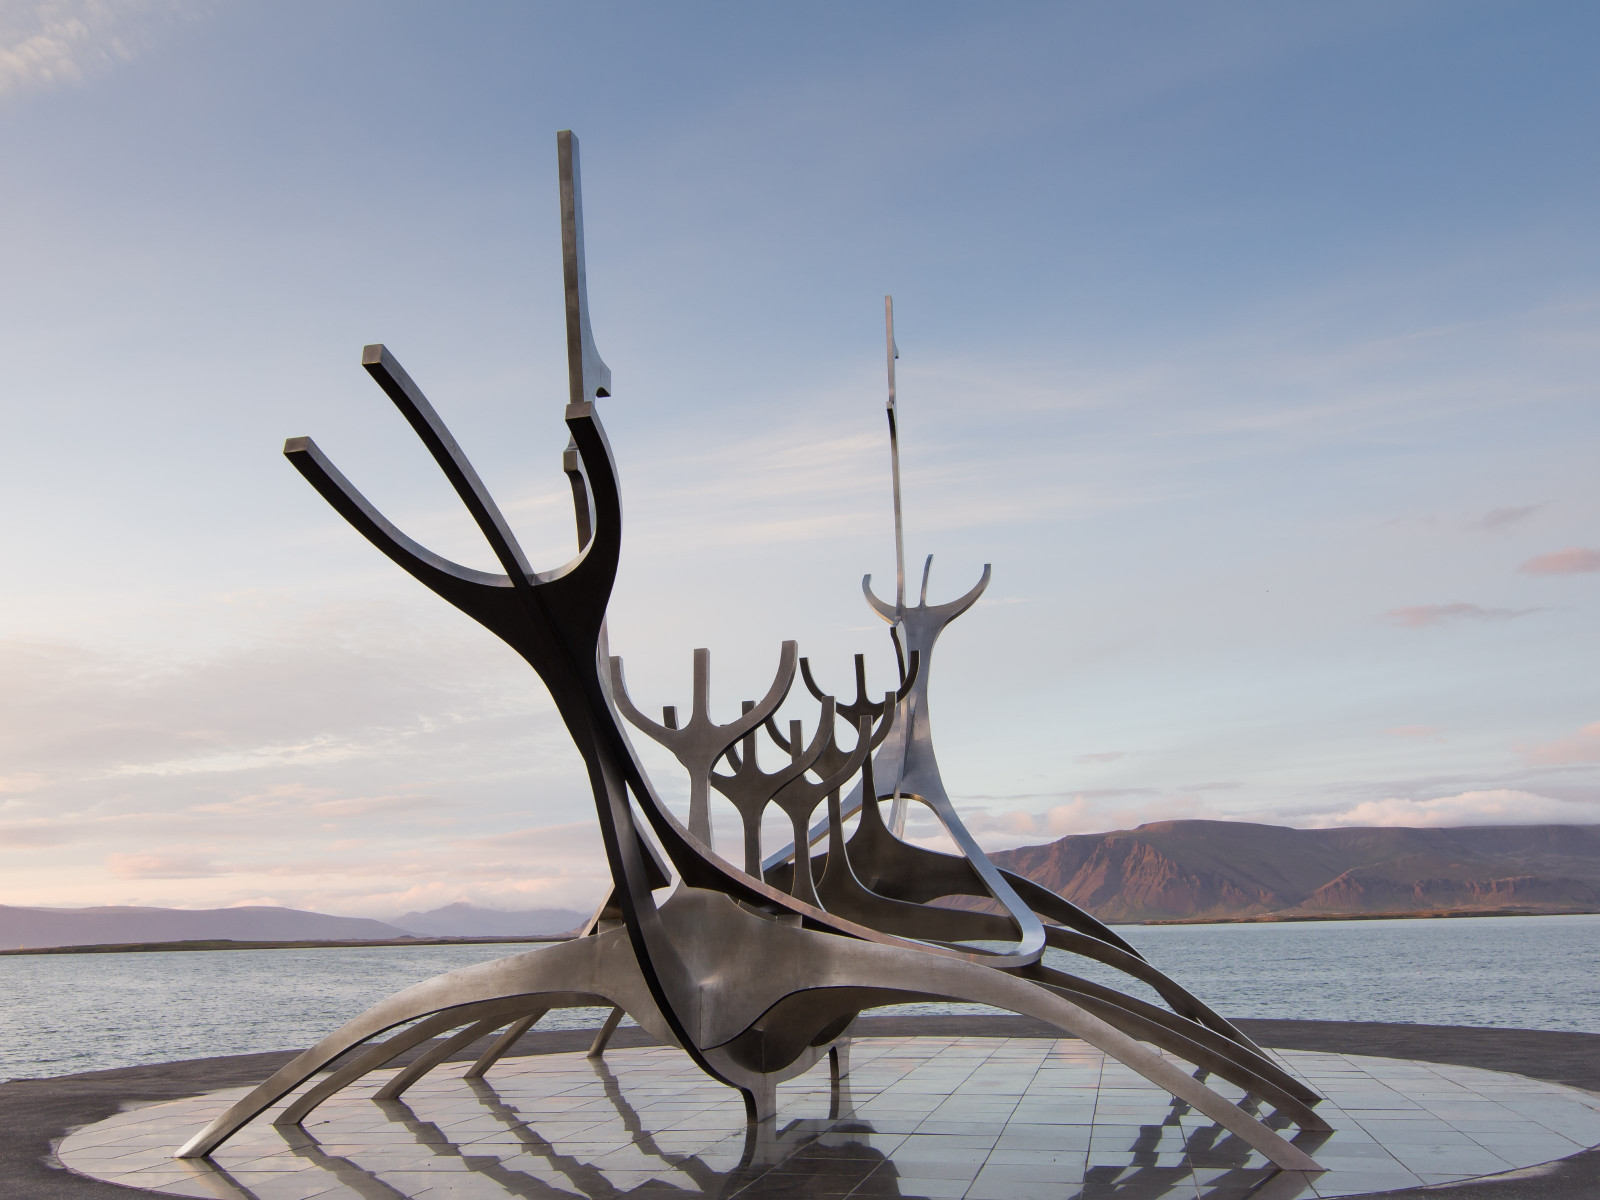 The Sun Voyager from Reykjavik, Iceland | 1600x1200 wallpaper